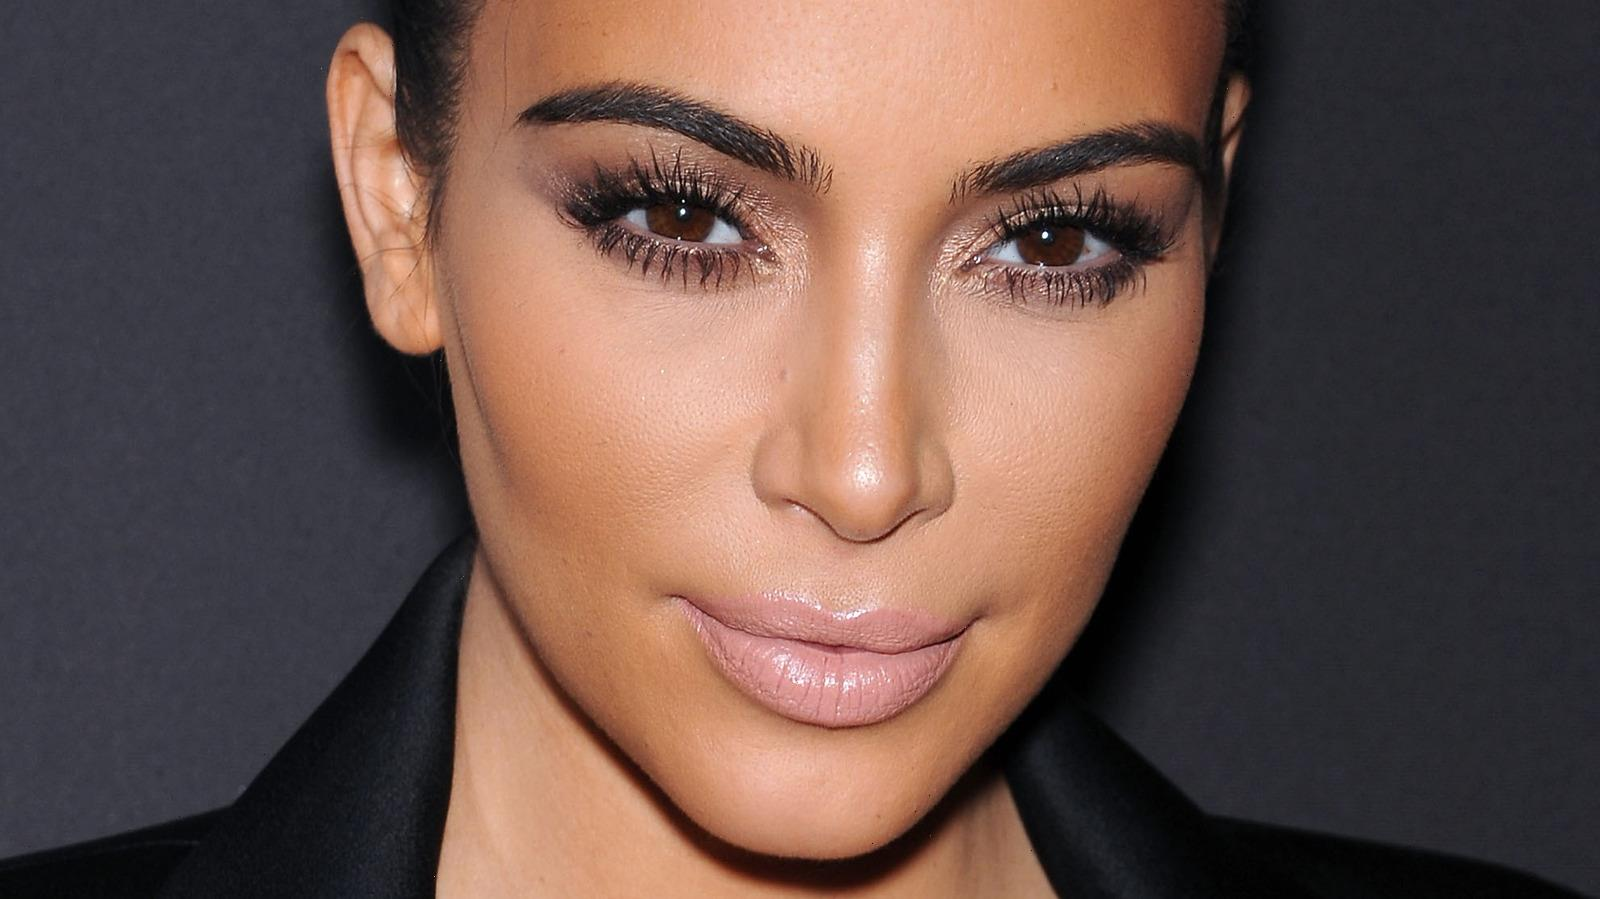 How Much Did Kim Kardashian And Kanye West's Wedding Really Cost?